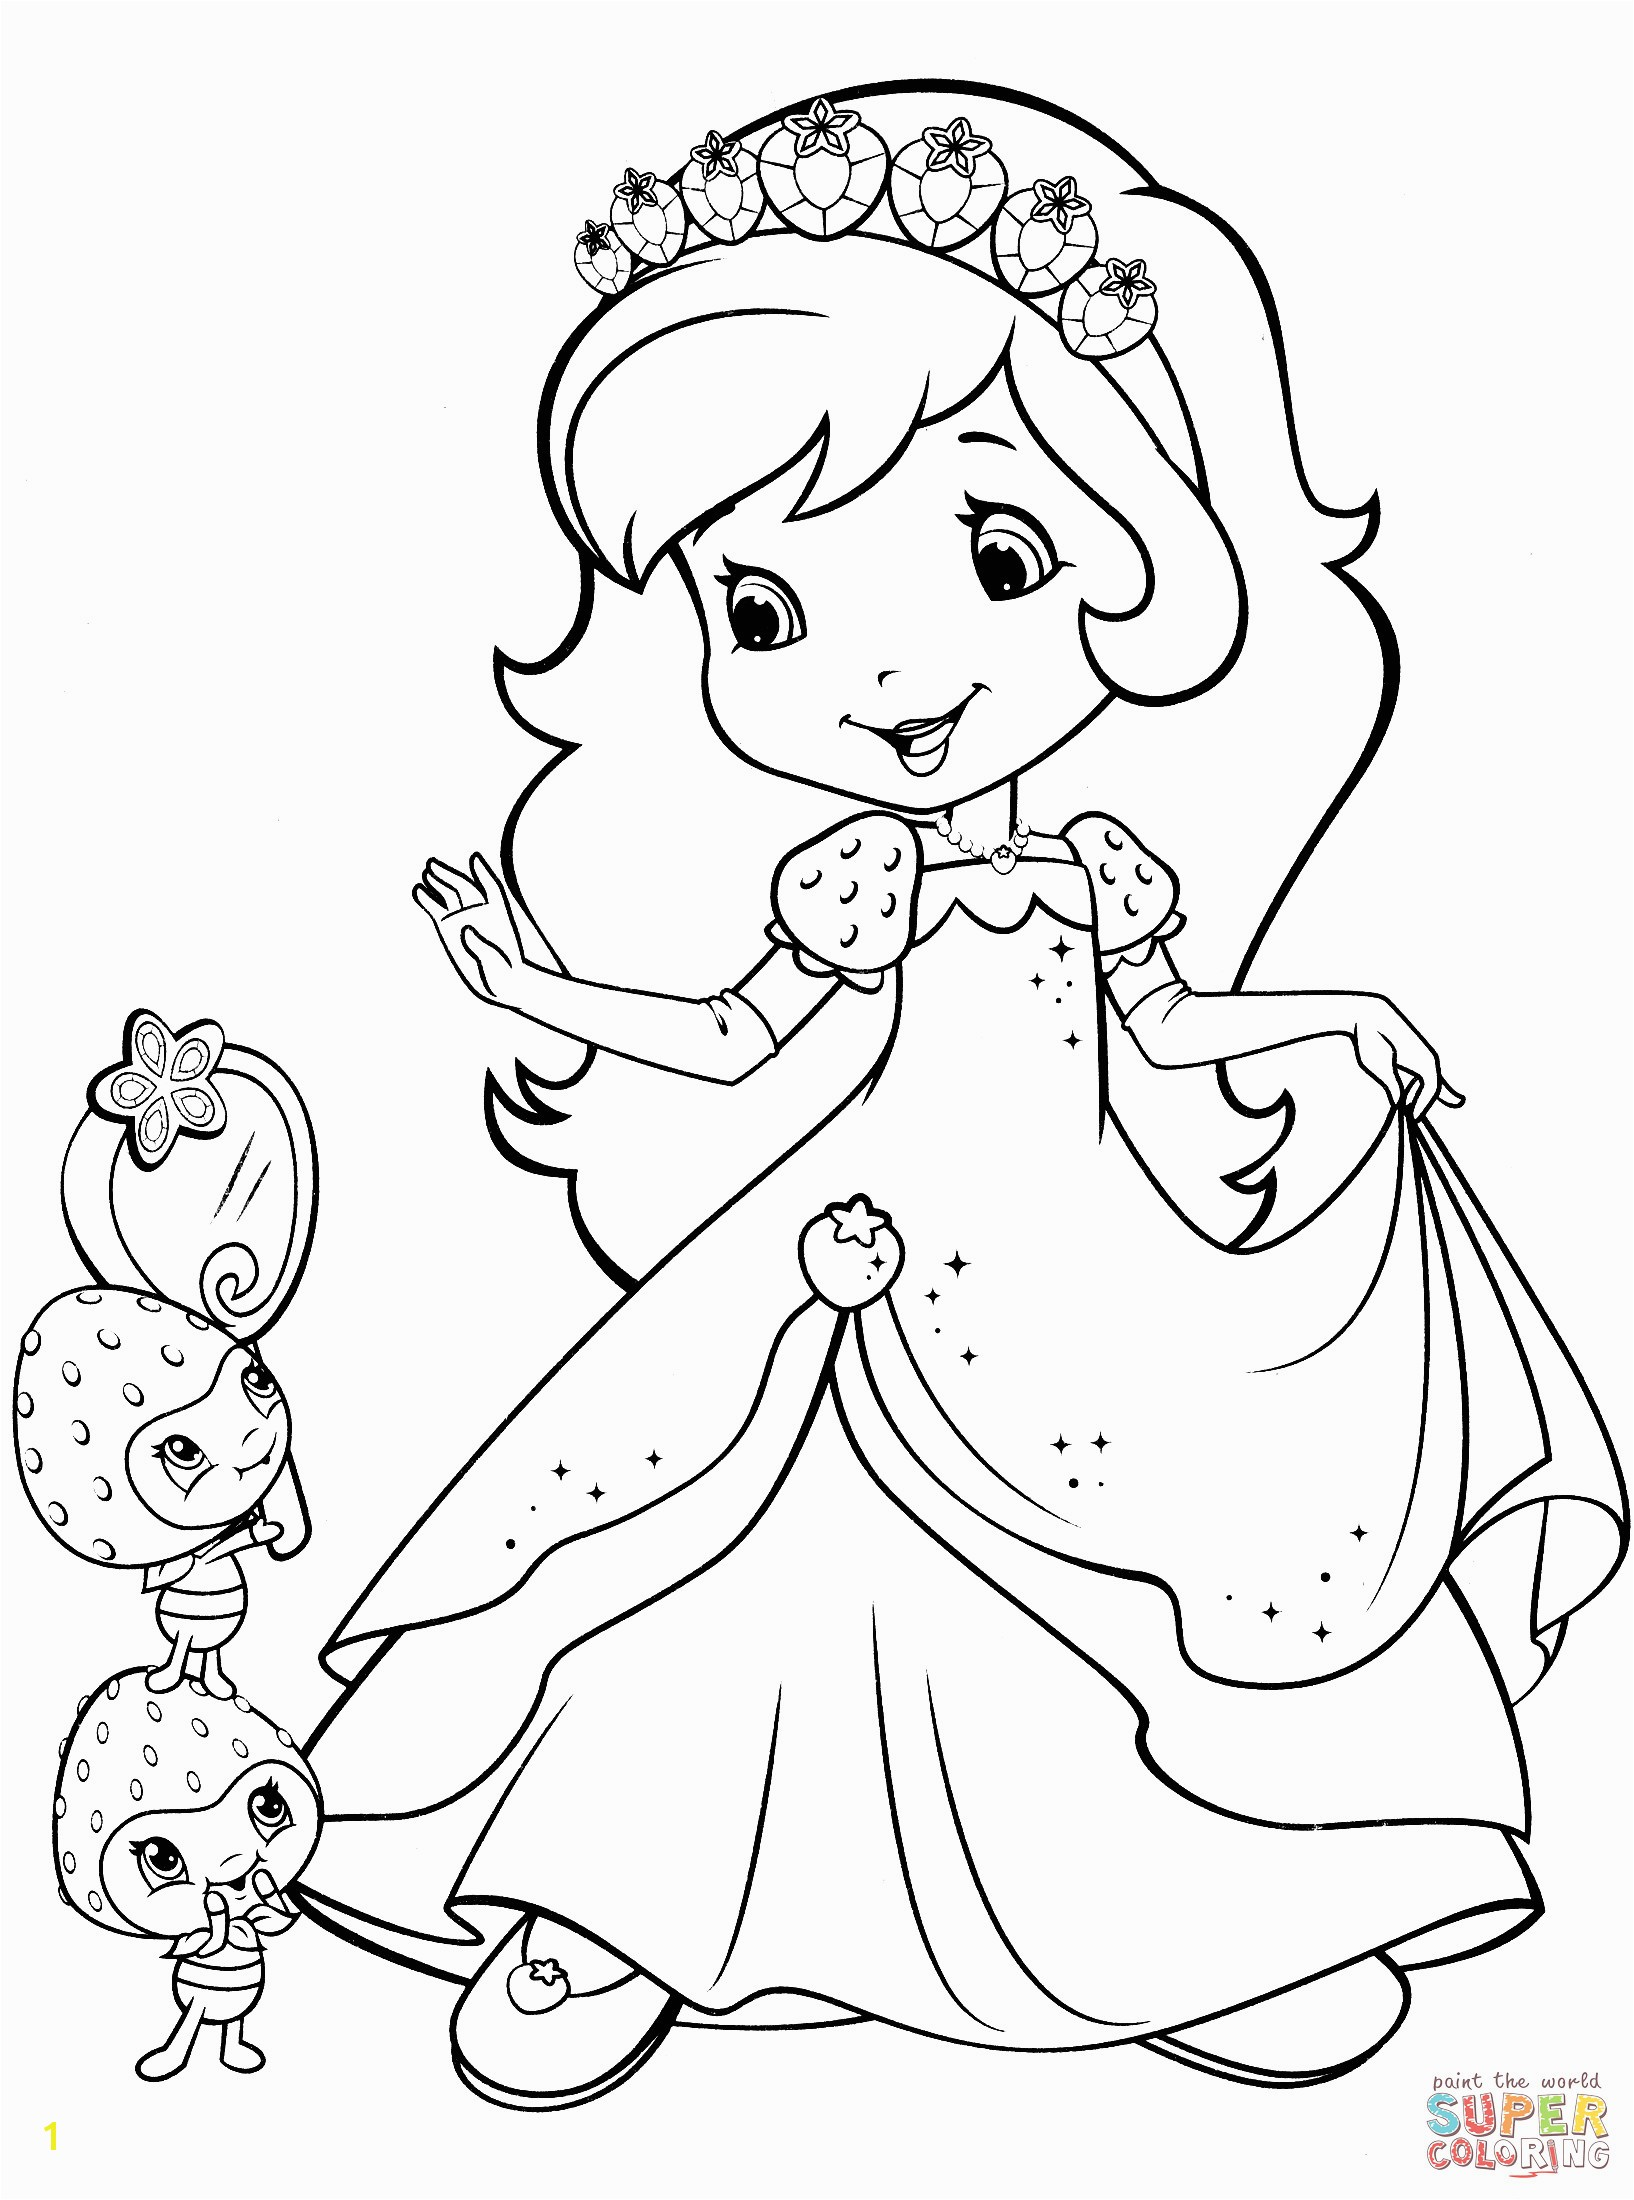 Coloring Pages Of Strawberry Shortcake and Her Friends Strawberry Shortcake and Berrykins Coloring Page Games Nazly